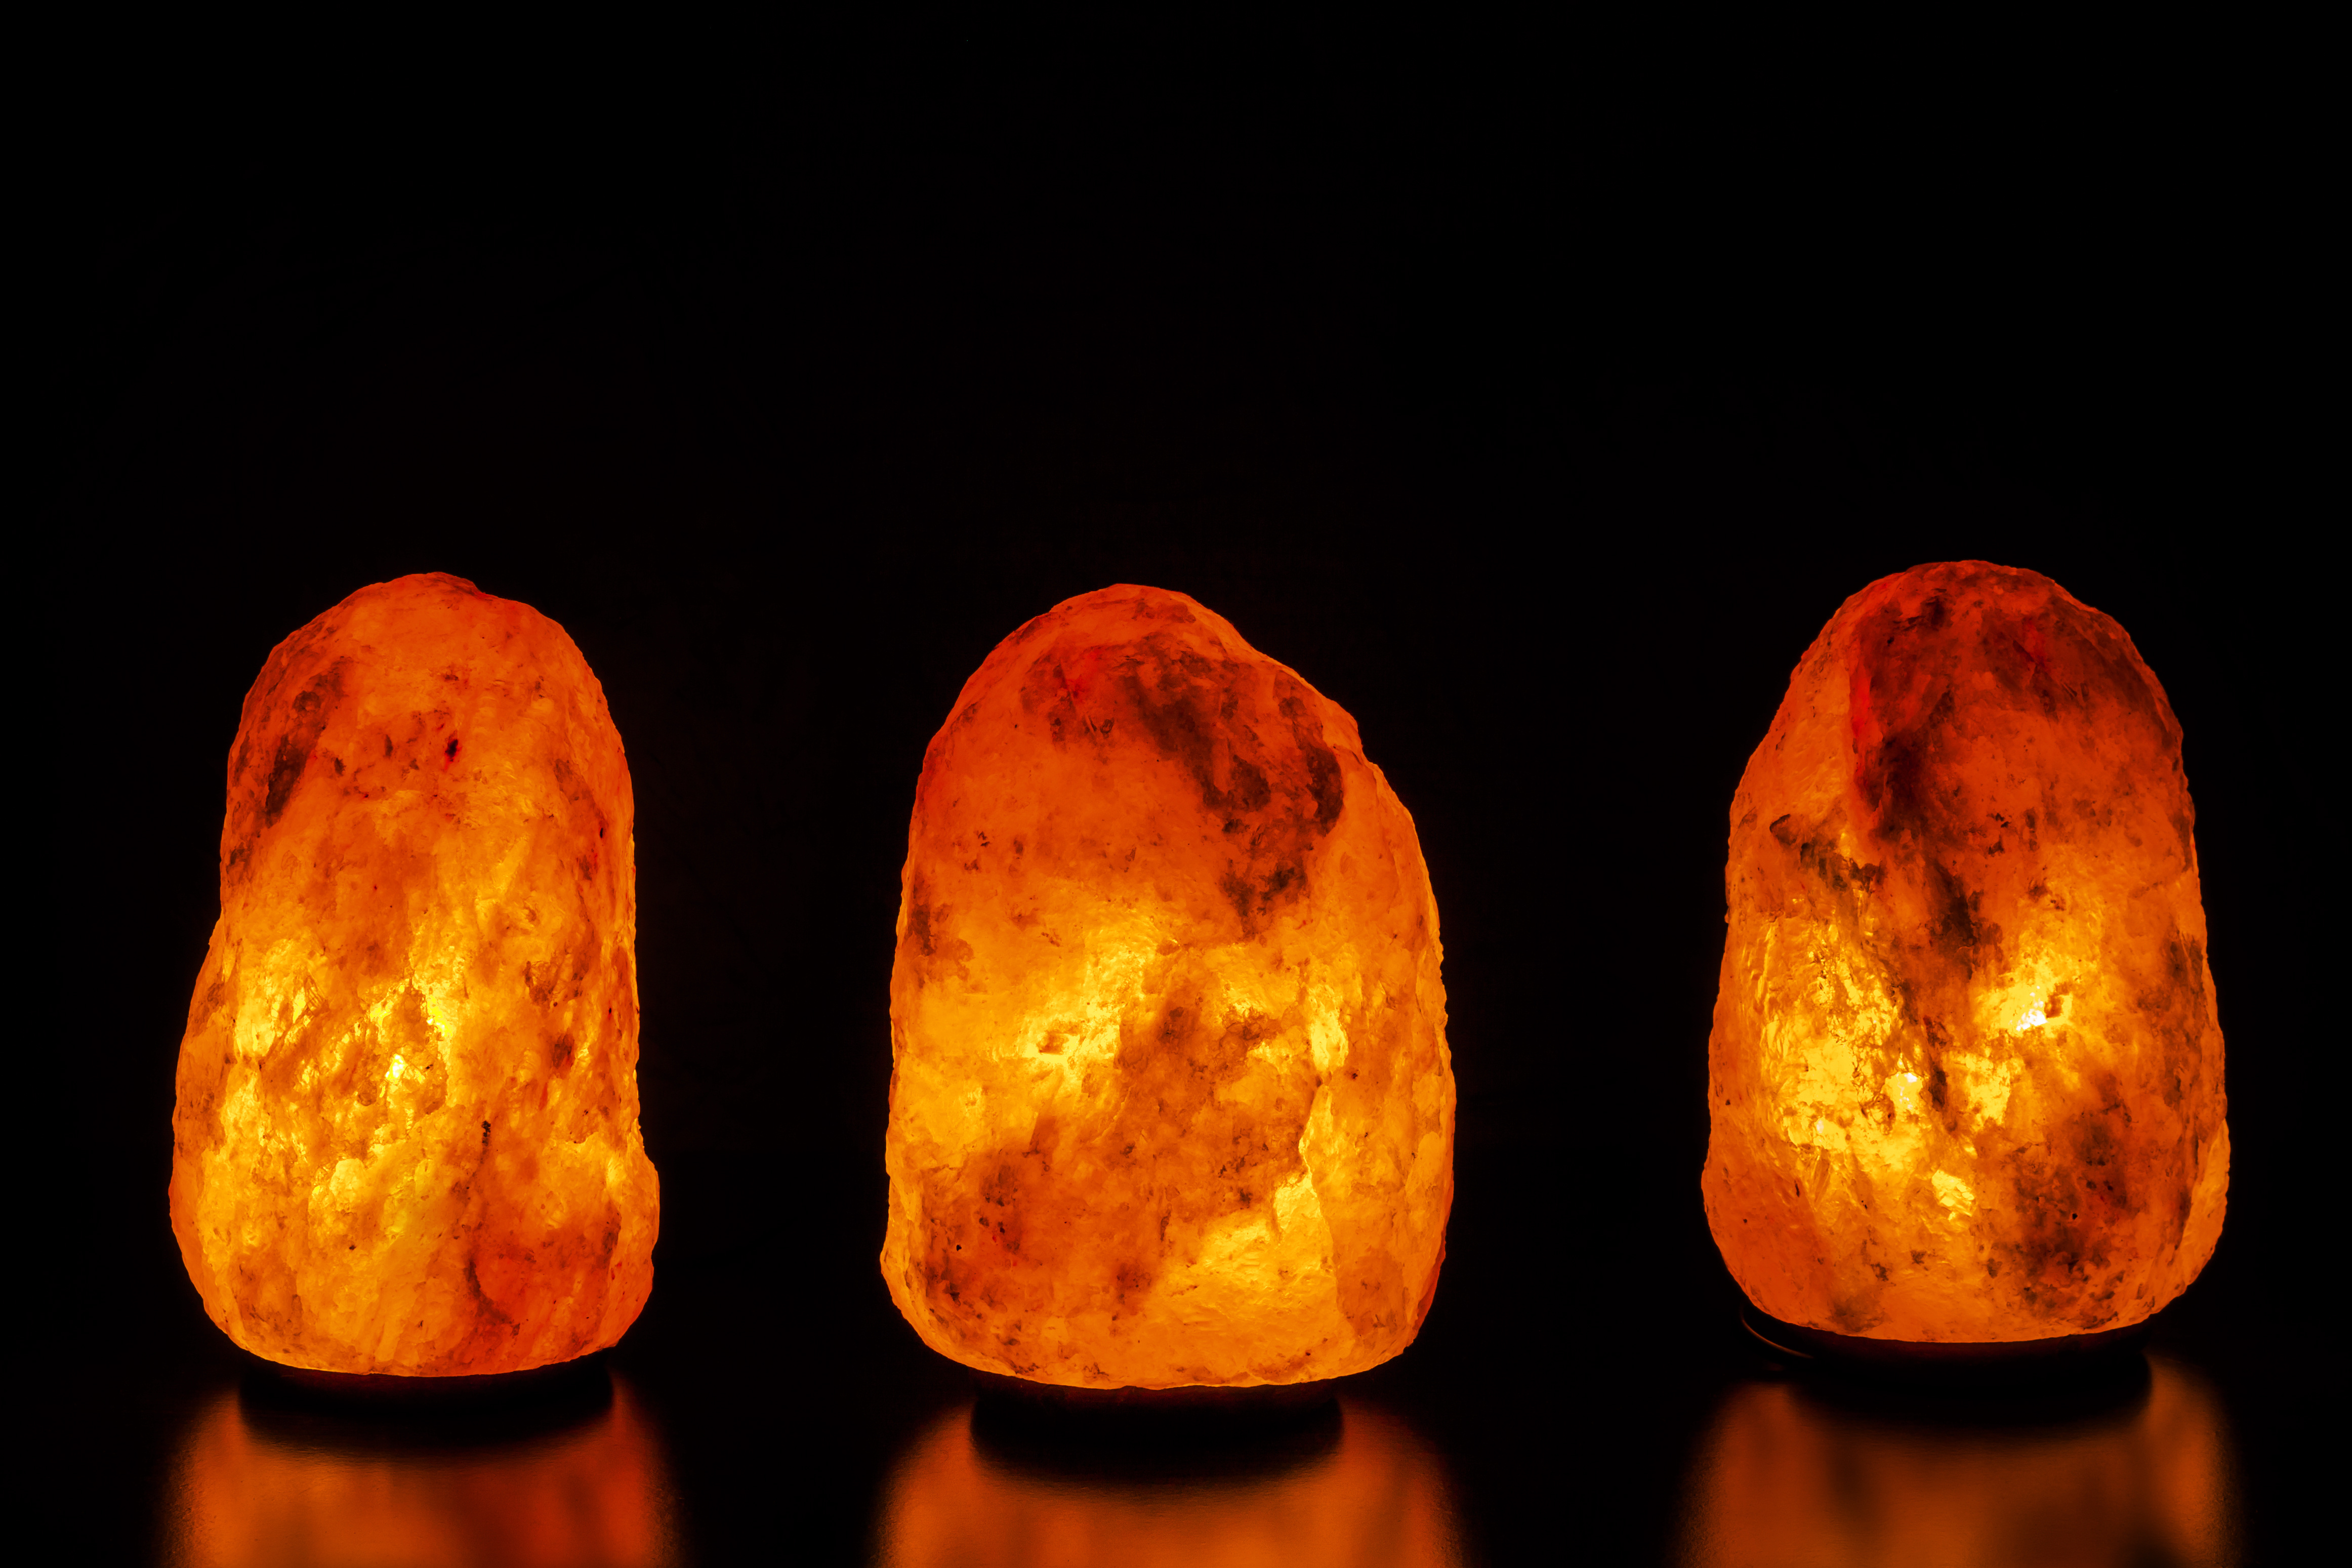 Salt Lamps Good For : Himalayan Salt Lamps- Let the Good Vibes Glow! - Be Green Carpet Cleaning